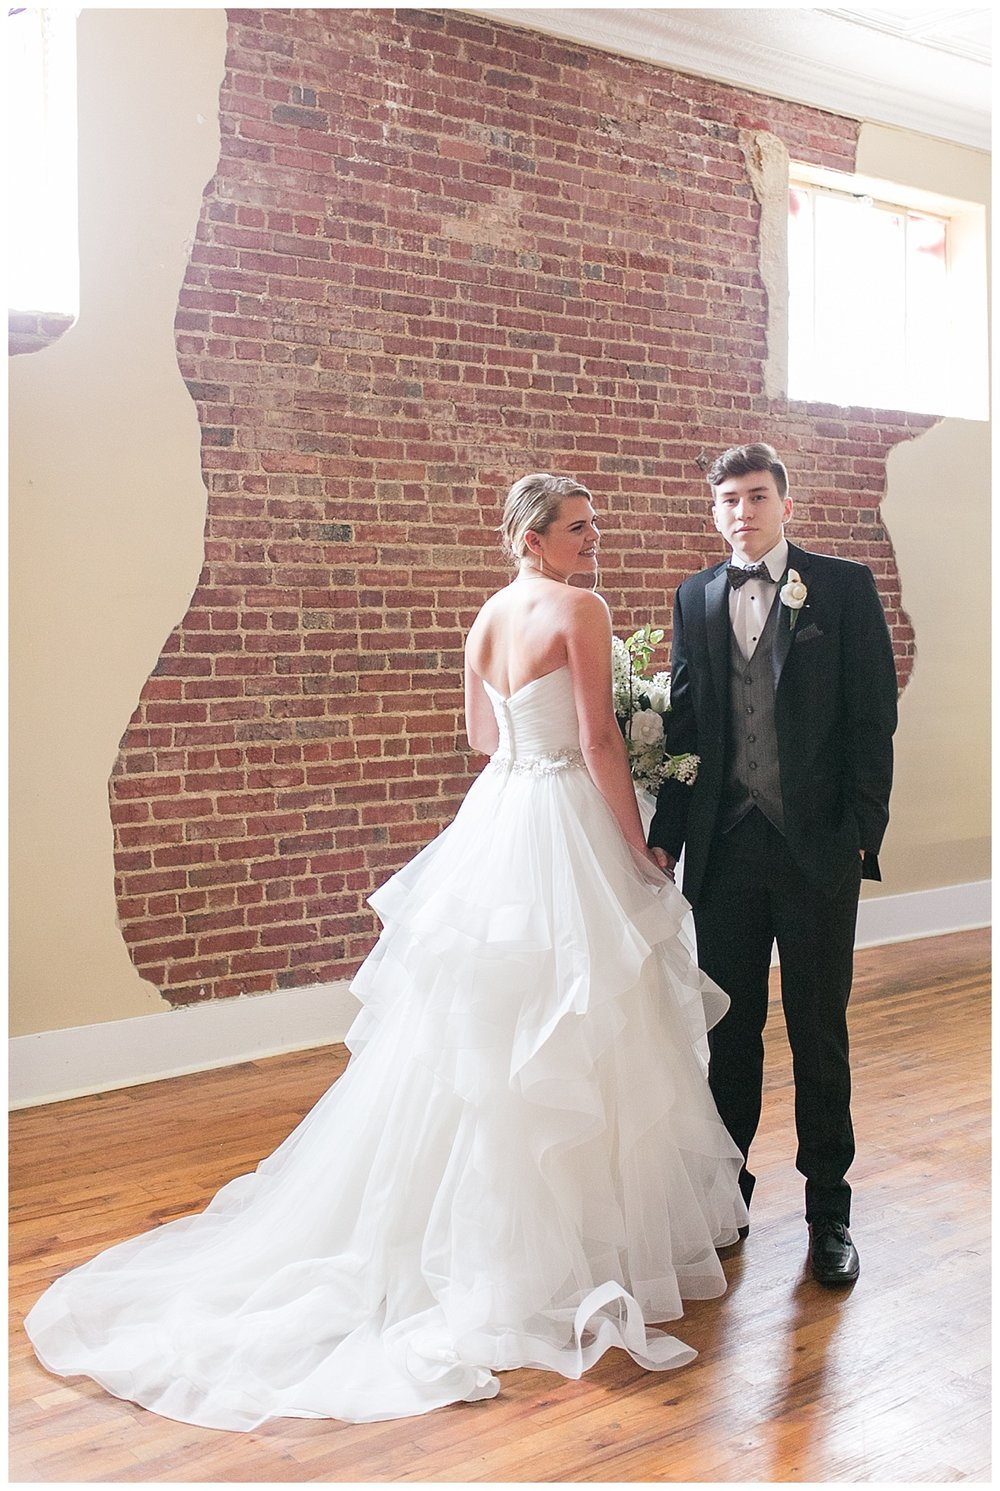 Scott's_Downtown_Monroe_Ga_Wedding_Photograpehrs_0004.jpg